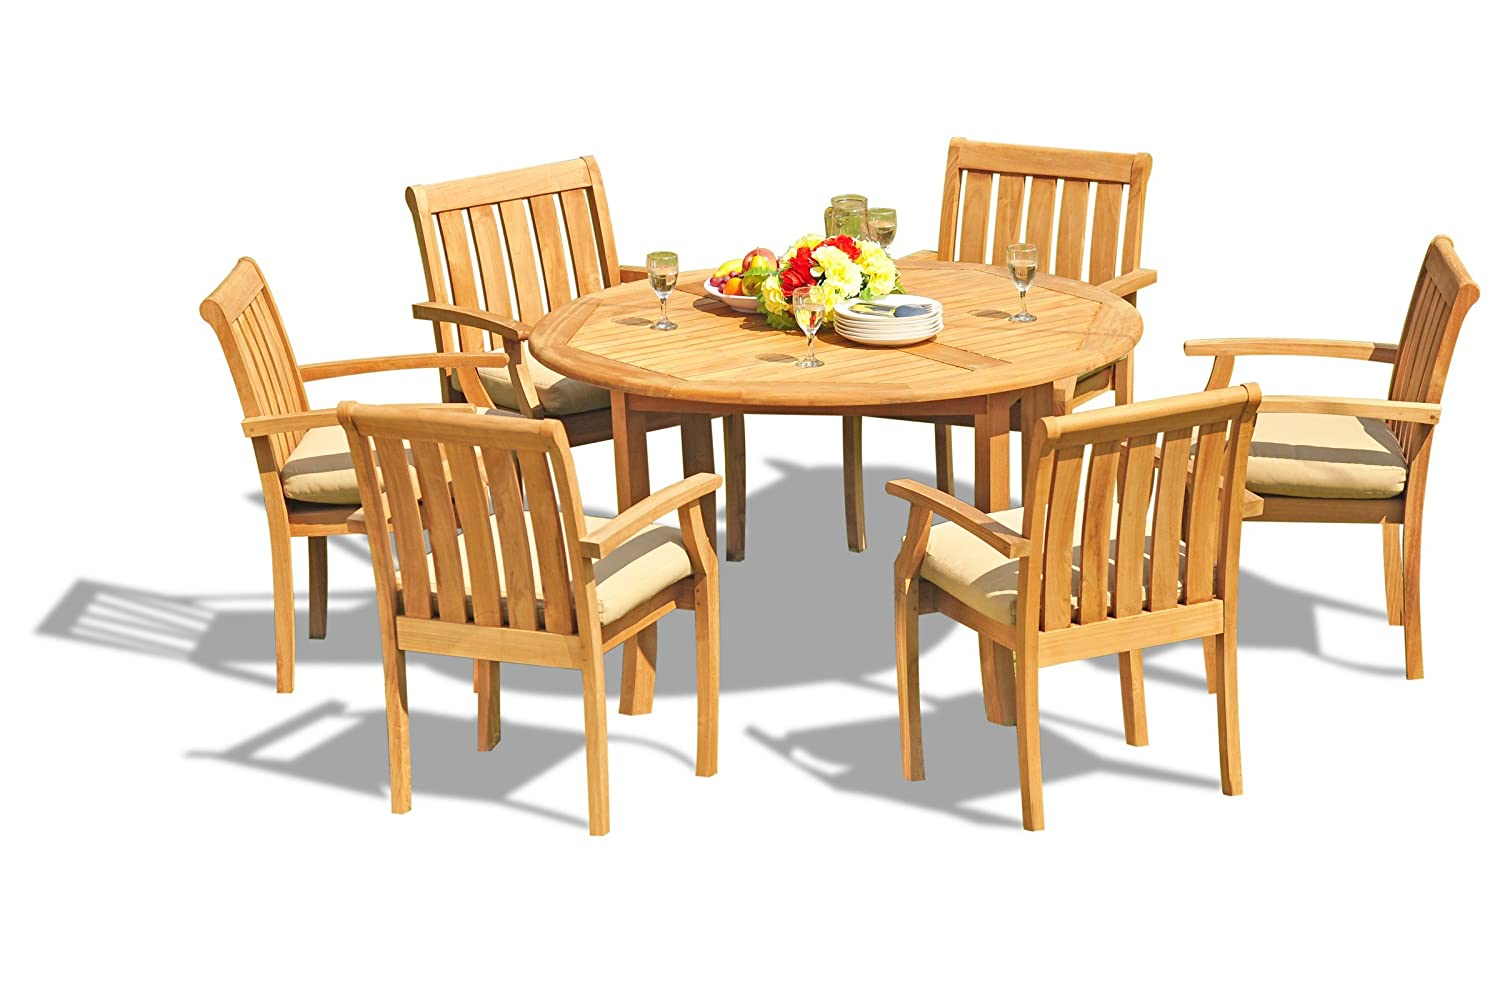 52 Round Table.Amazon Com New 5 Pc Luxurious Grade A Teak Wood Outdoor Dining Set